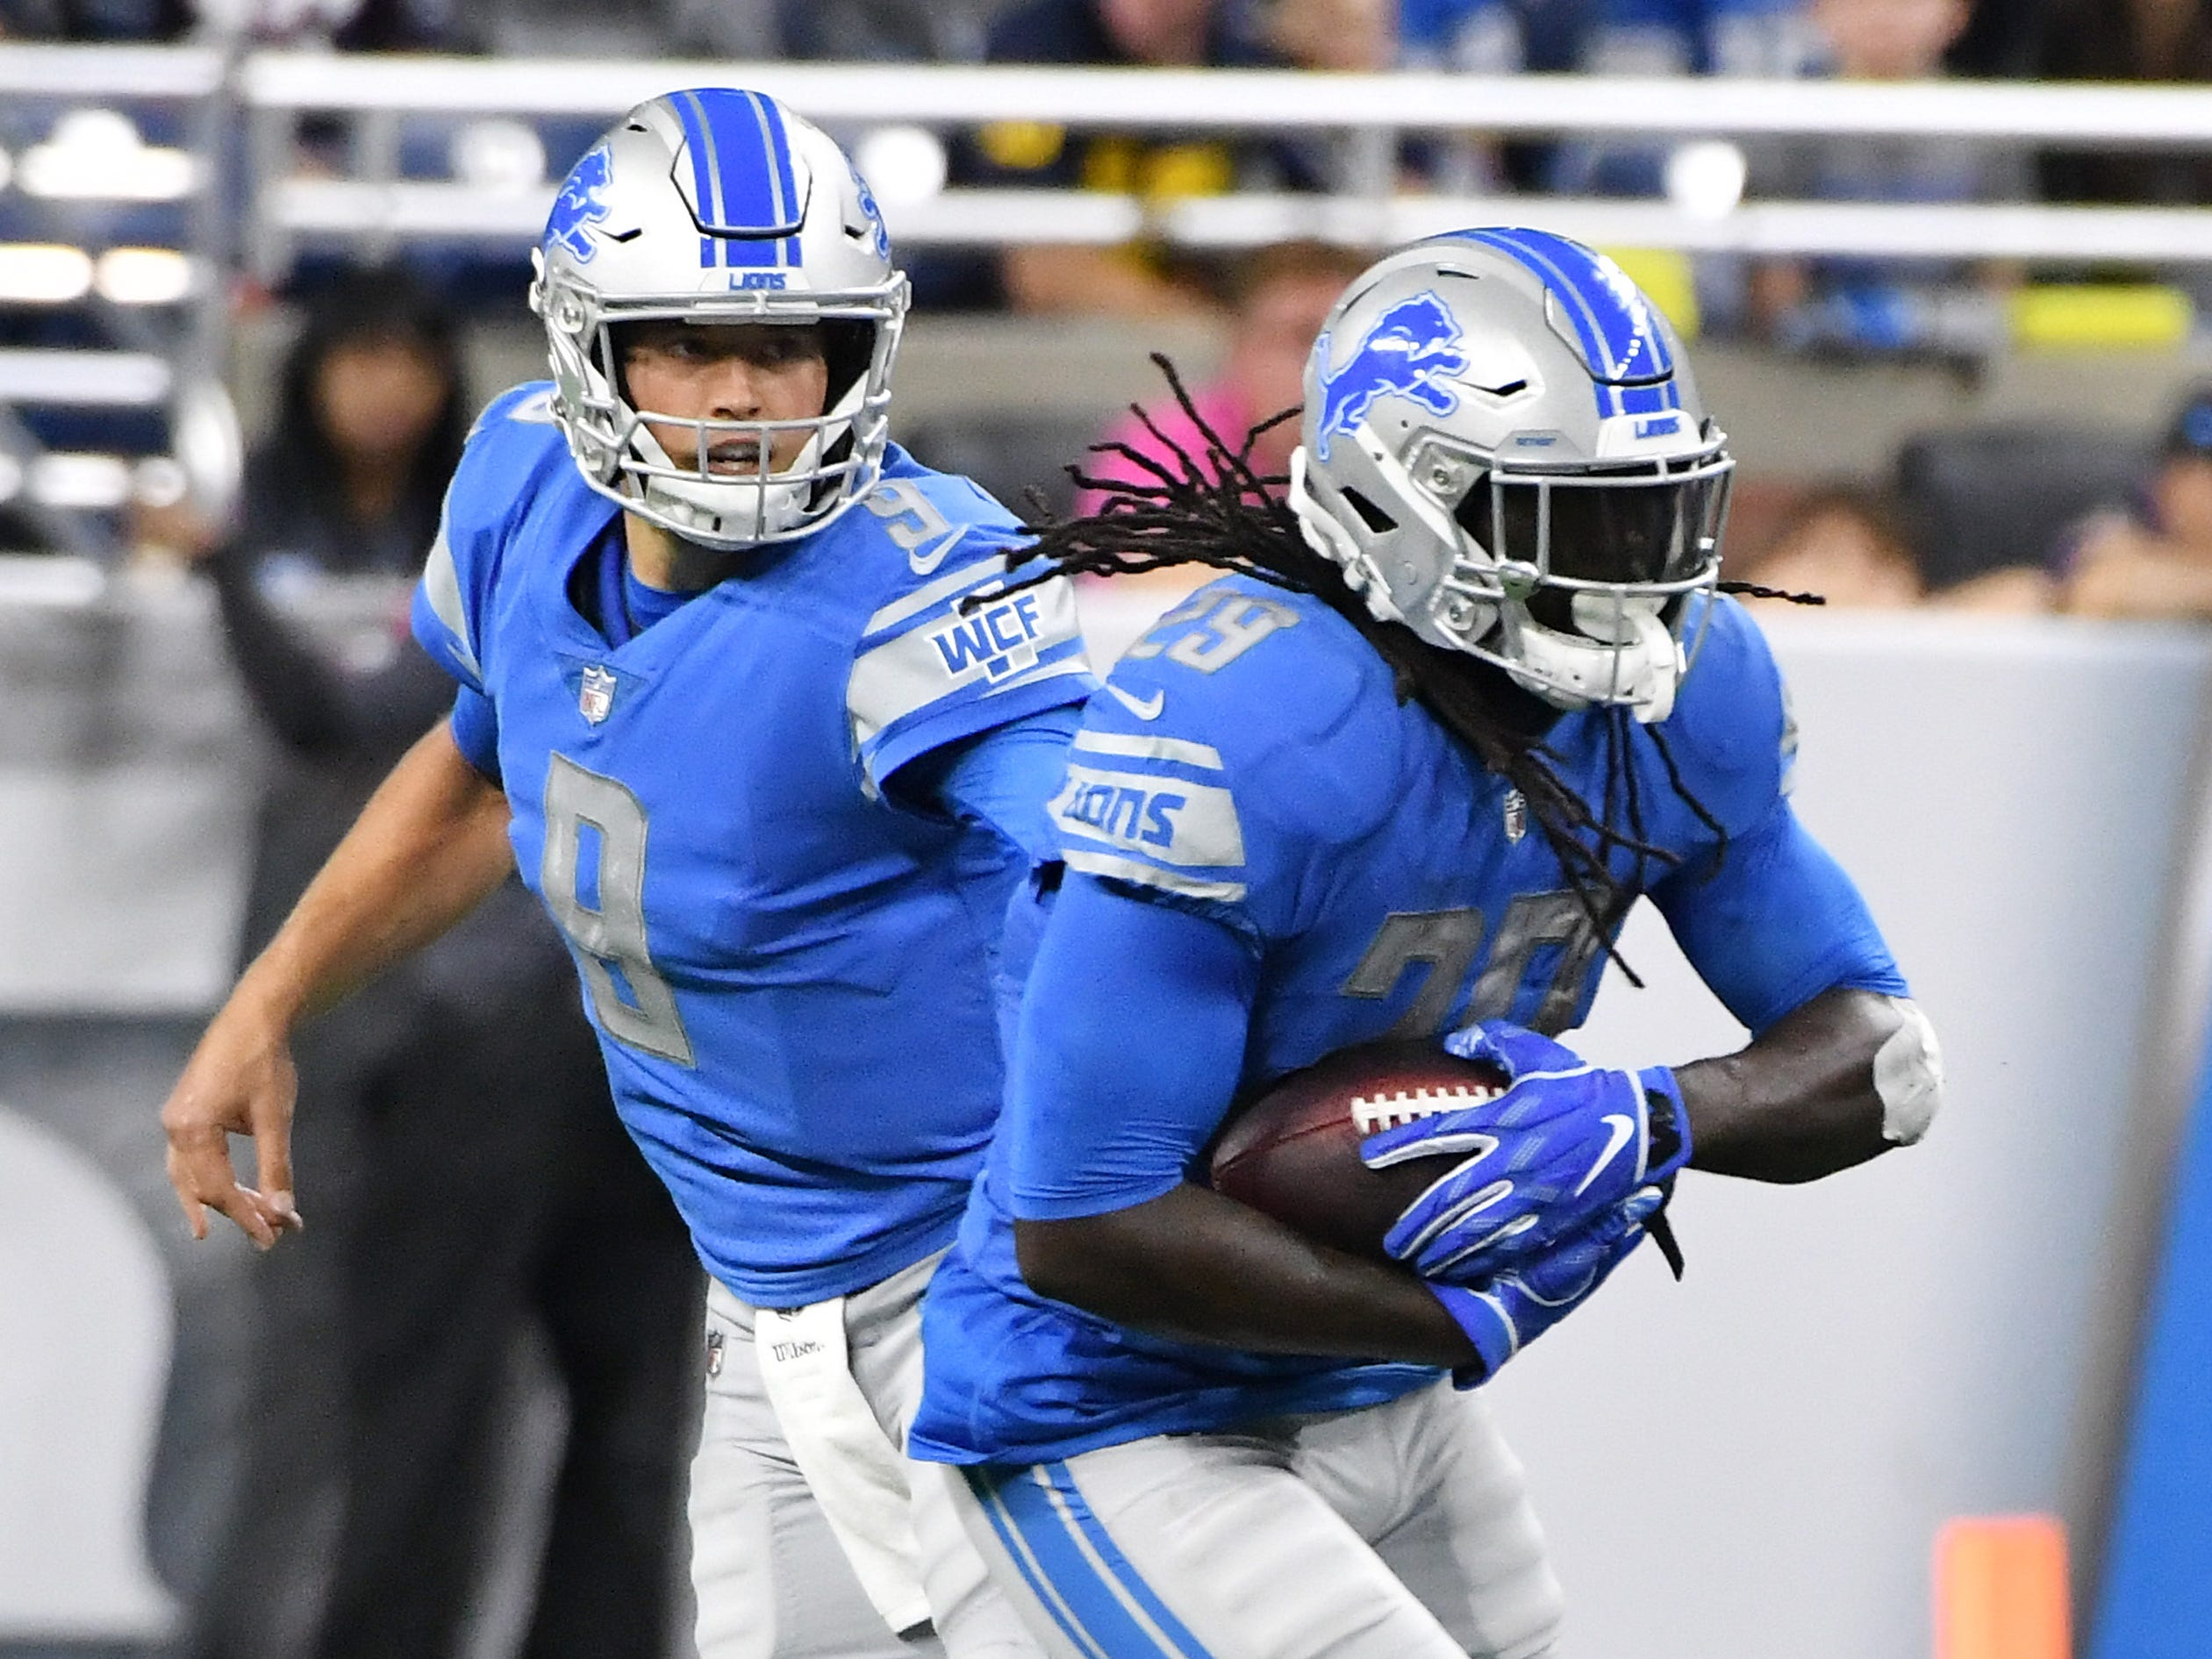 Lions quarterback Matthew Stafford hands off to LeGarrette Blount in the first half.  Detroit Lions vs New England Patriots at Ford Field in Detroit on Sept. 23, 2018.